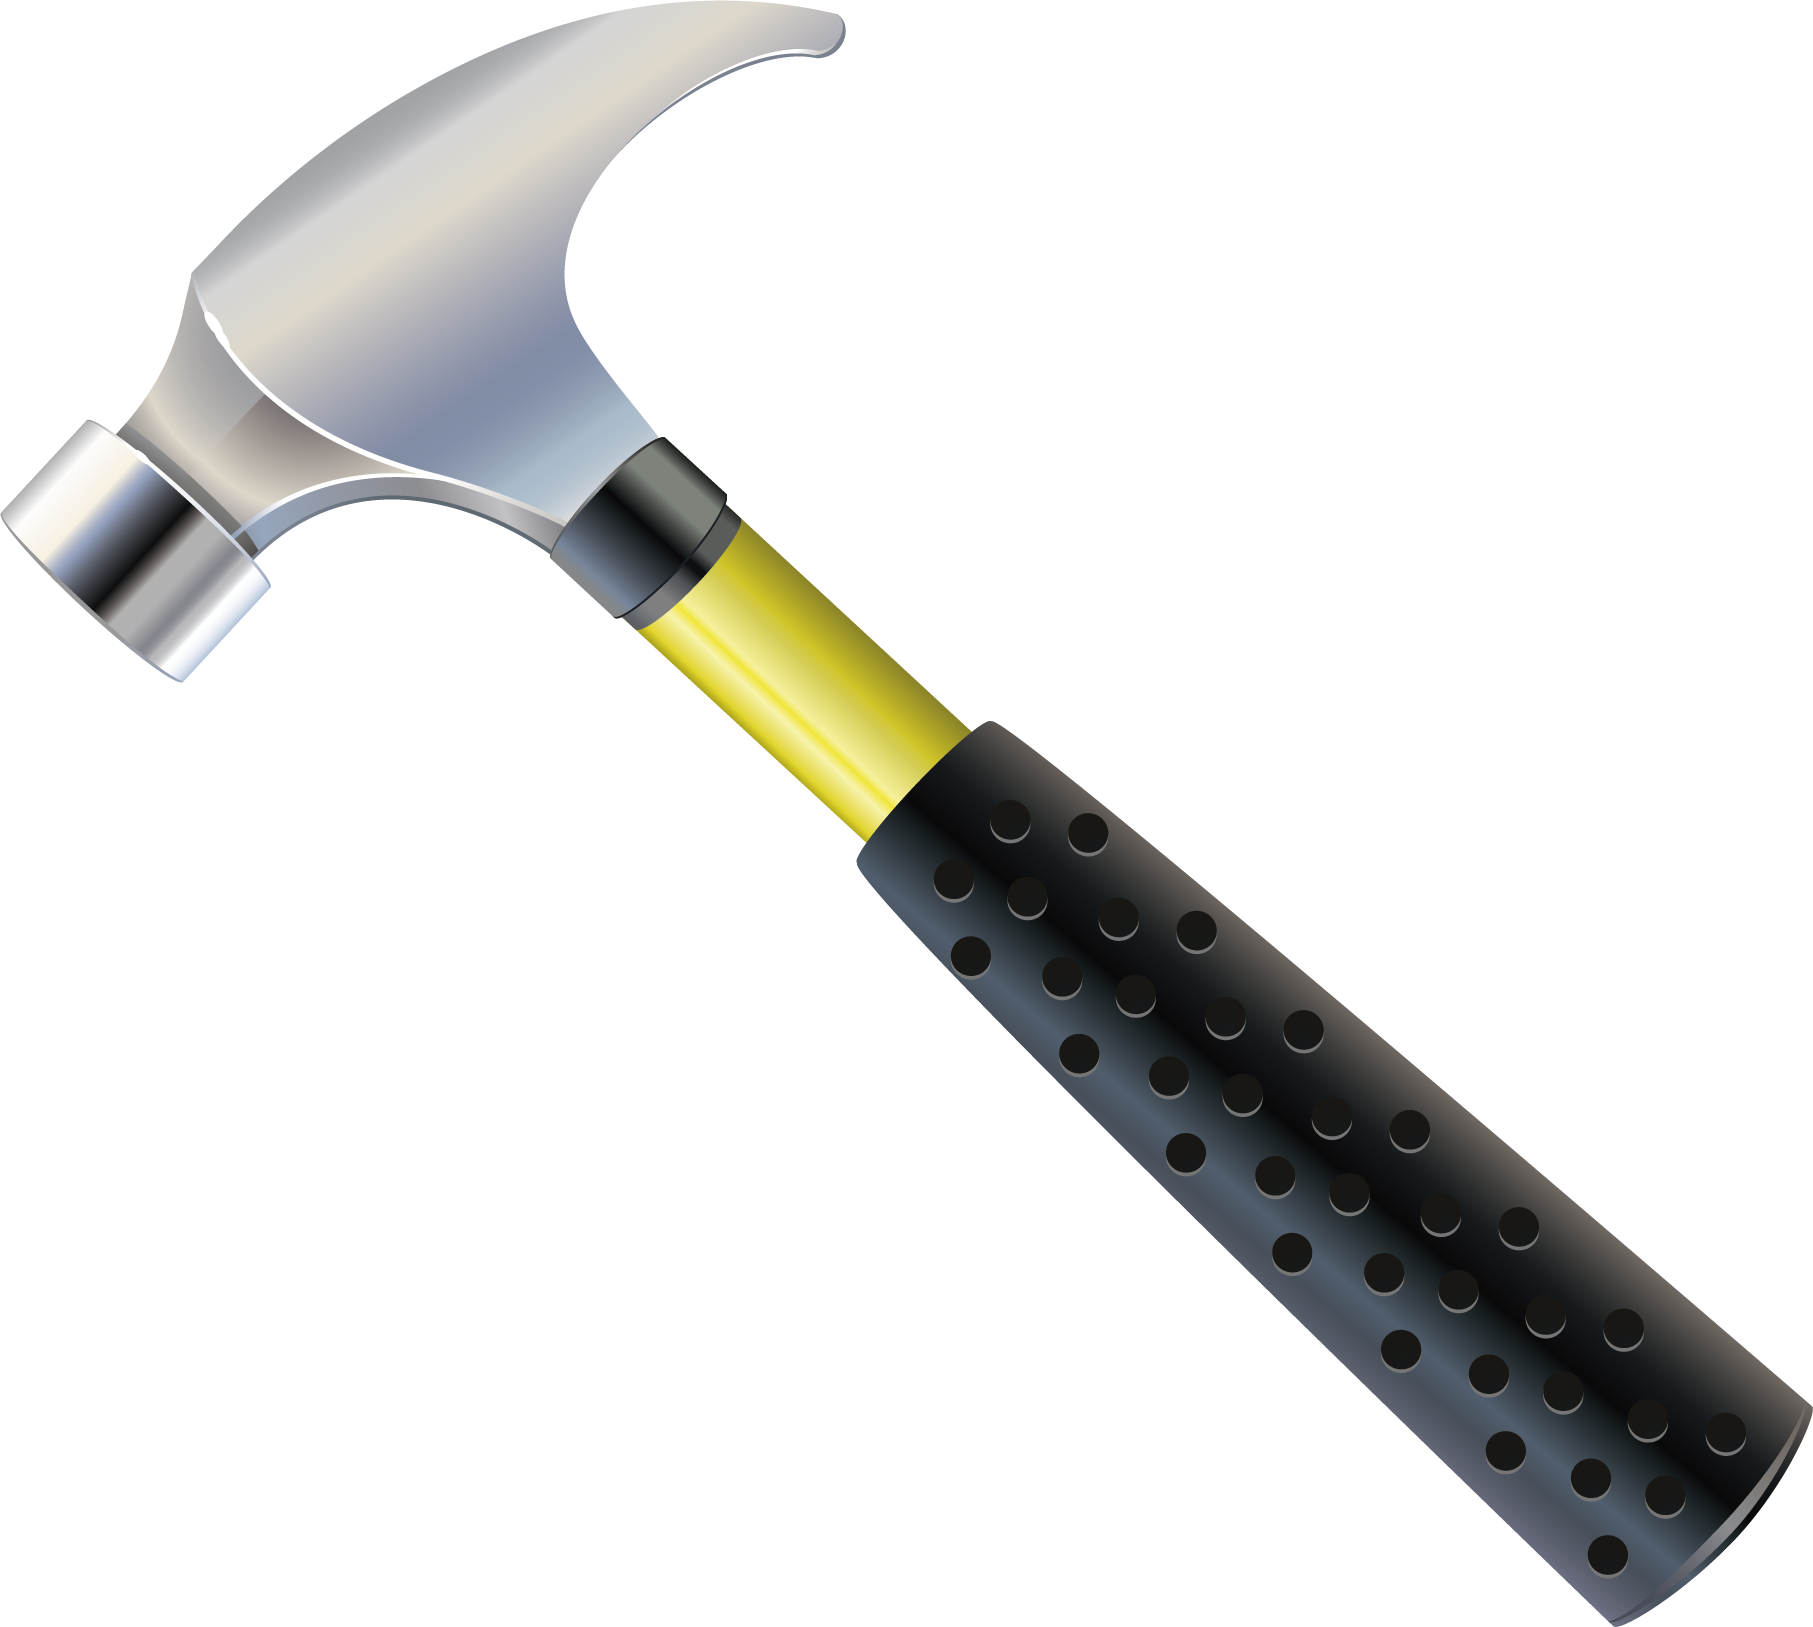 Geologists tool download png. Hammer clipart clear background